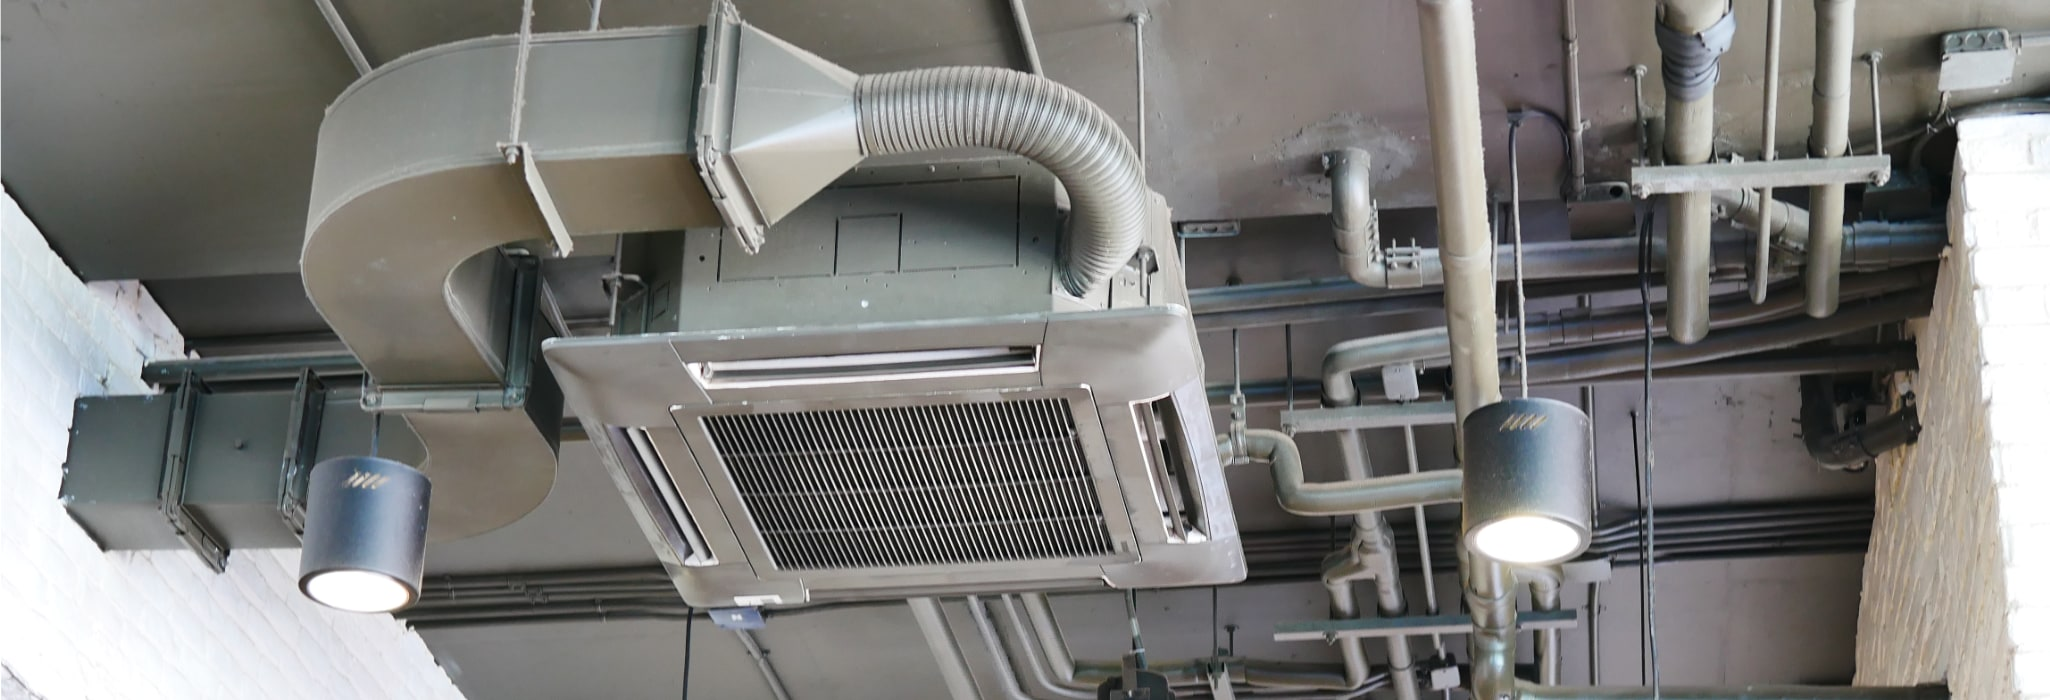 Commercial air conditioner